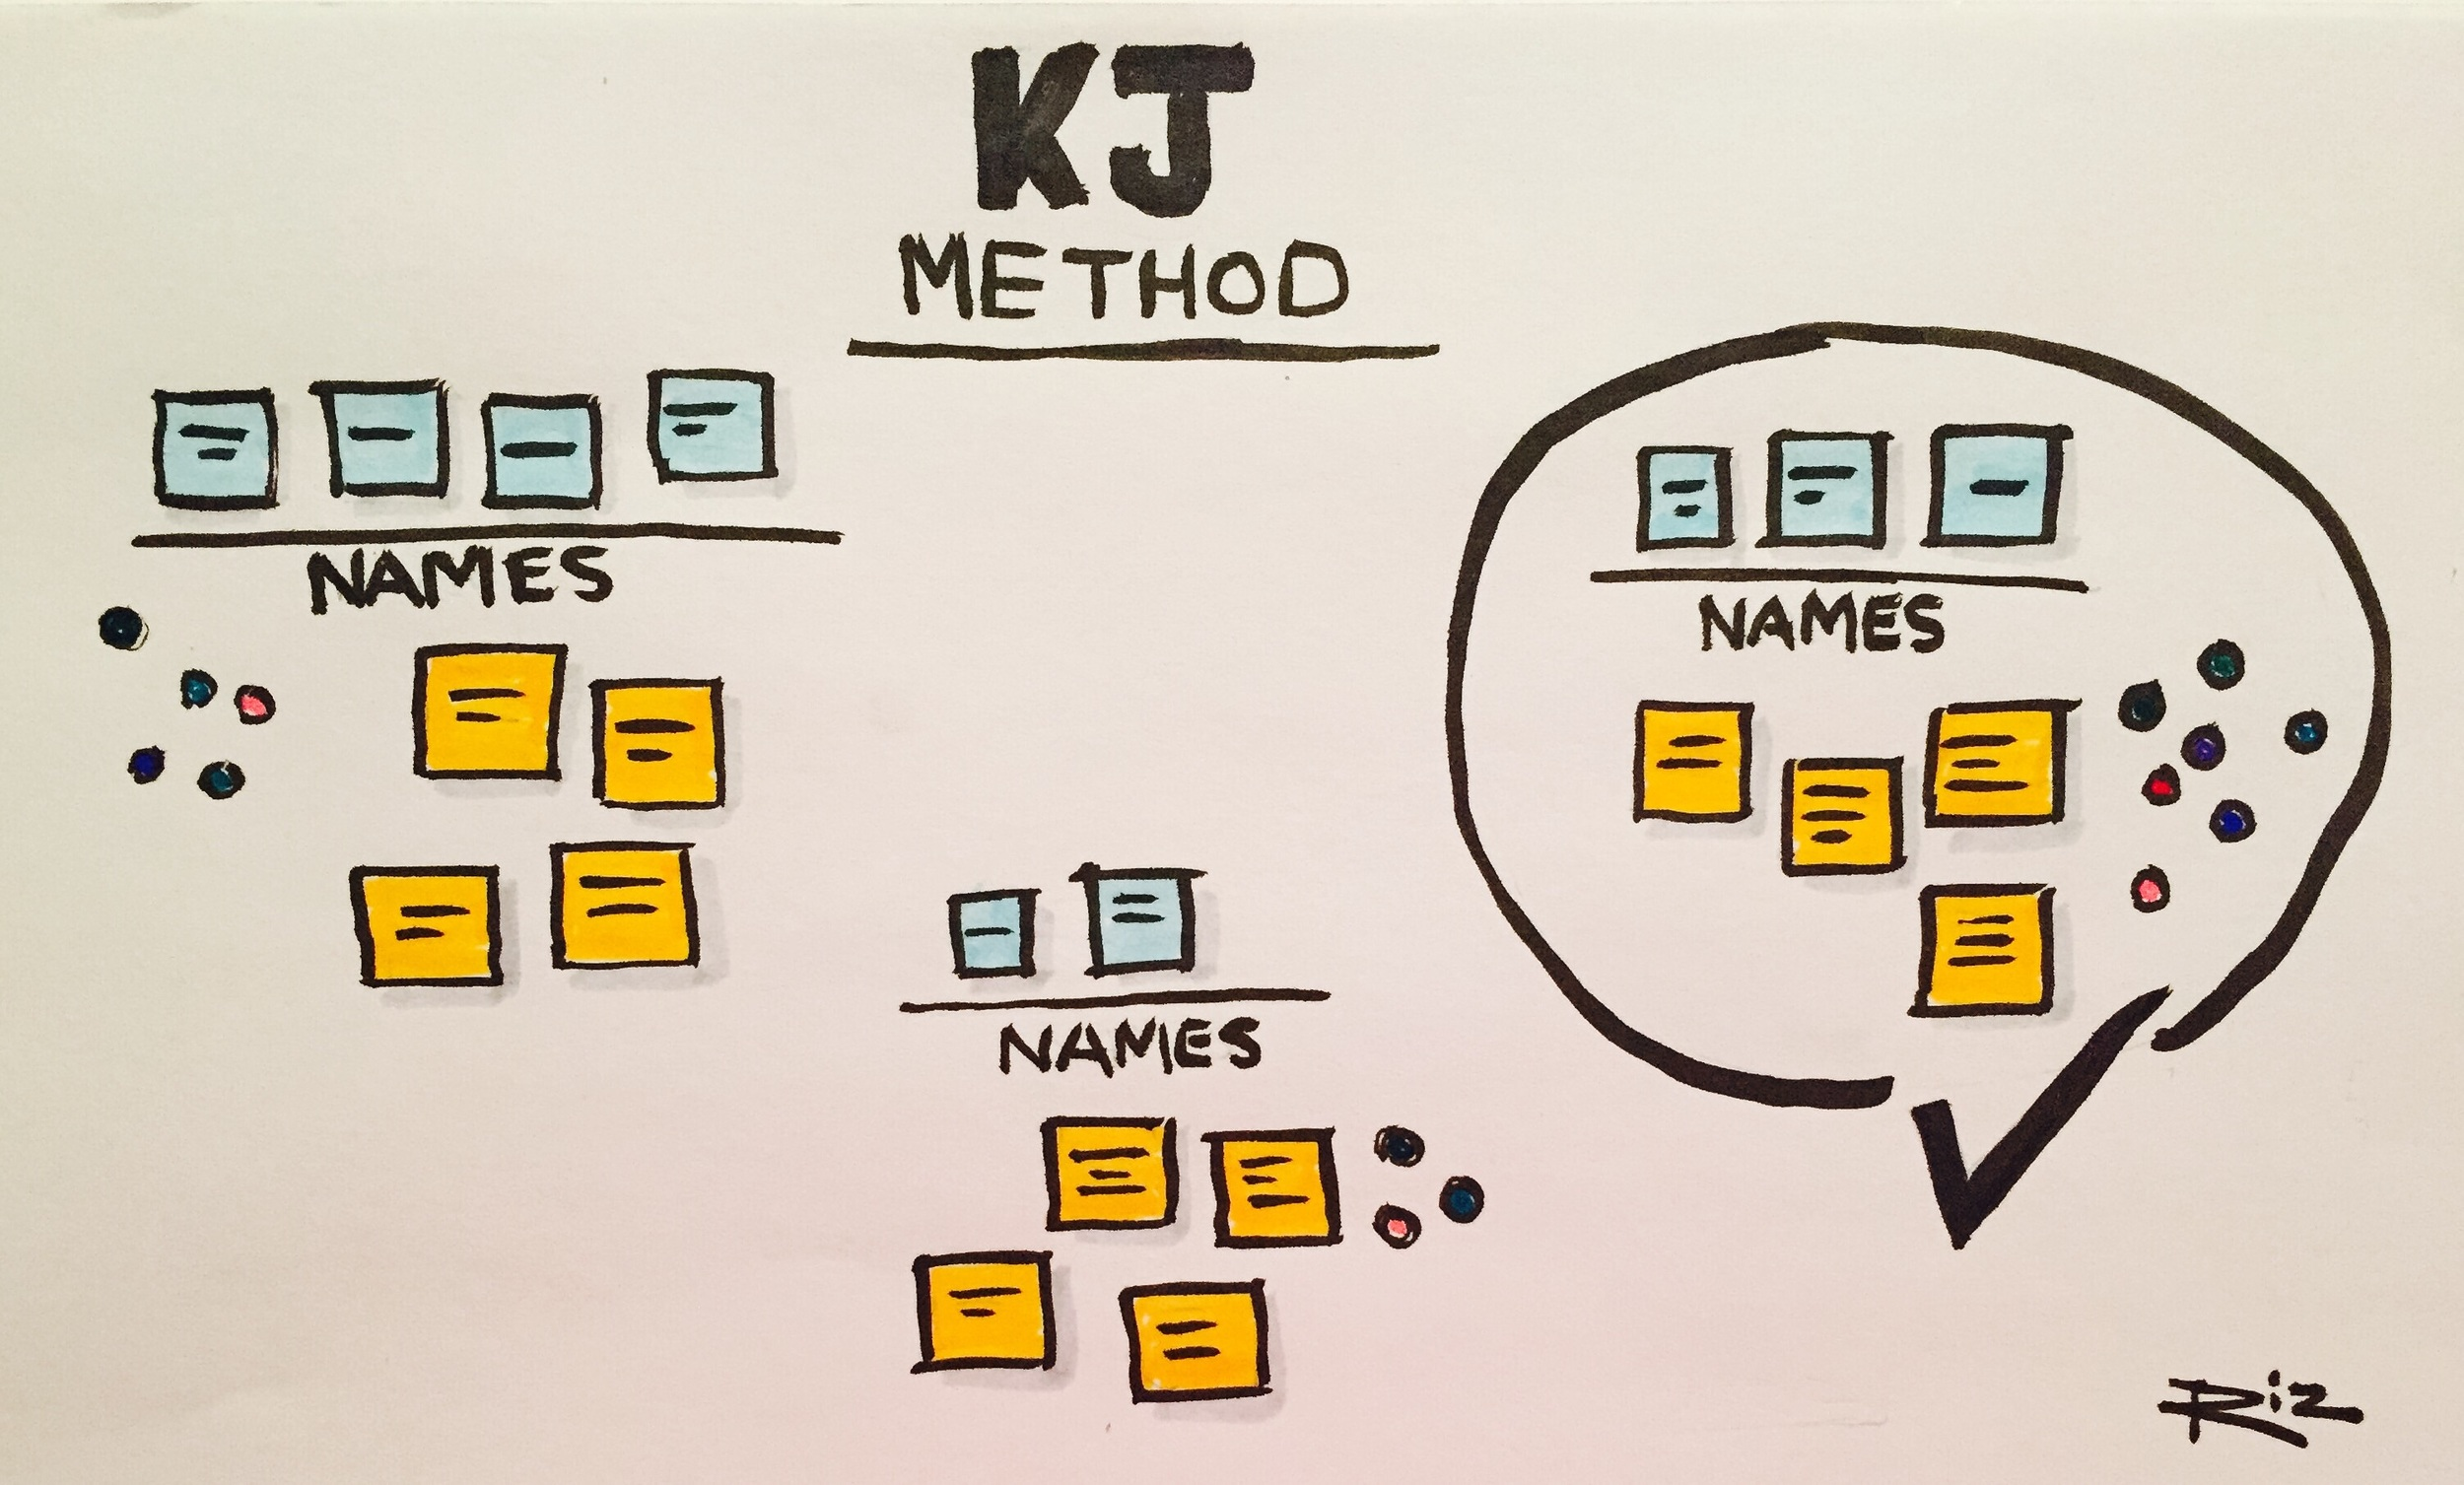 KJ Method - Method used to reach consensus within a group.